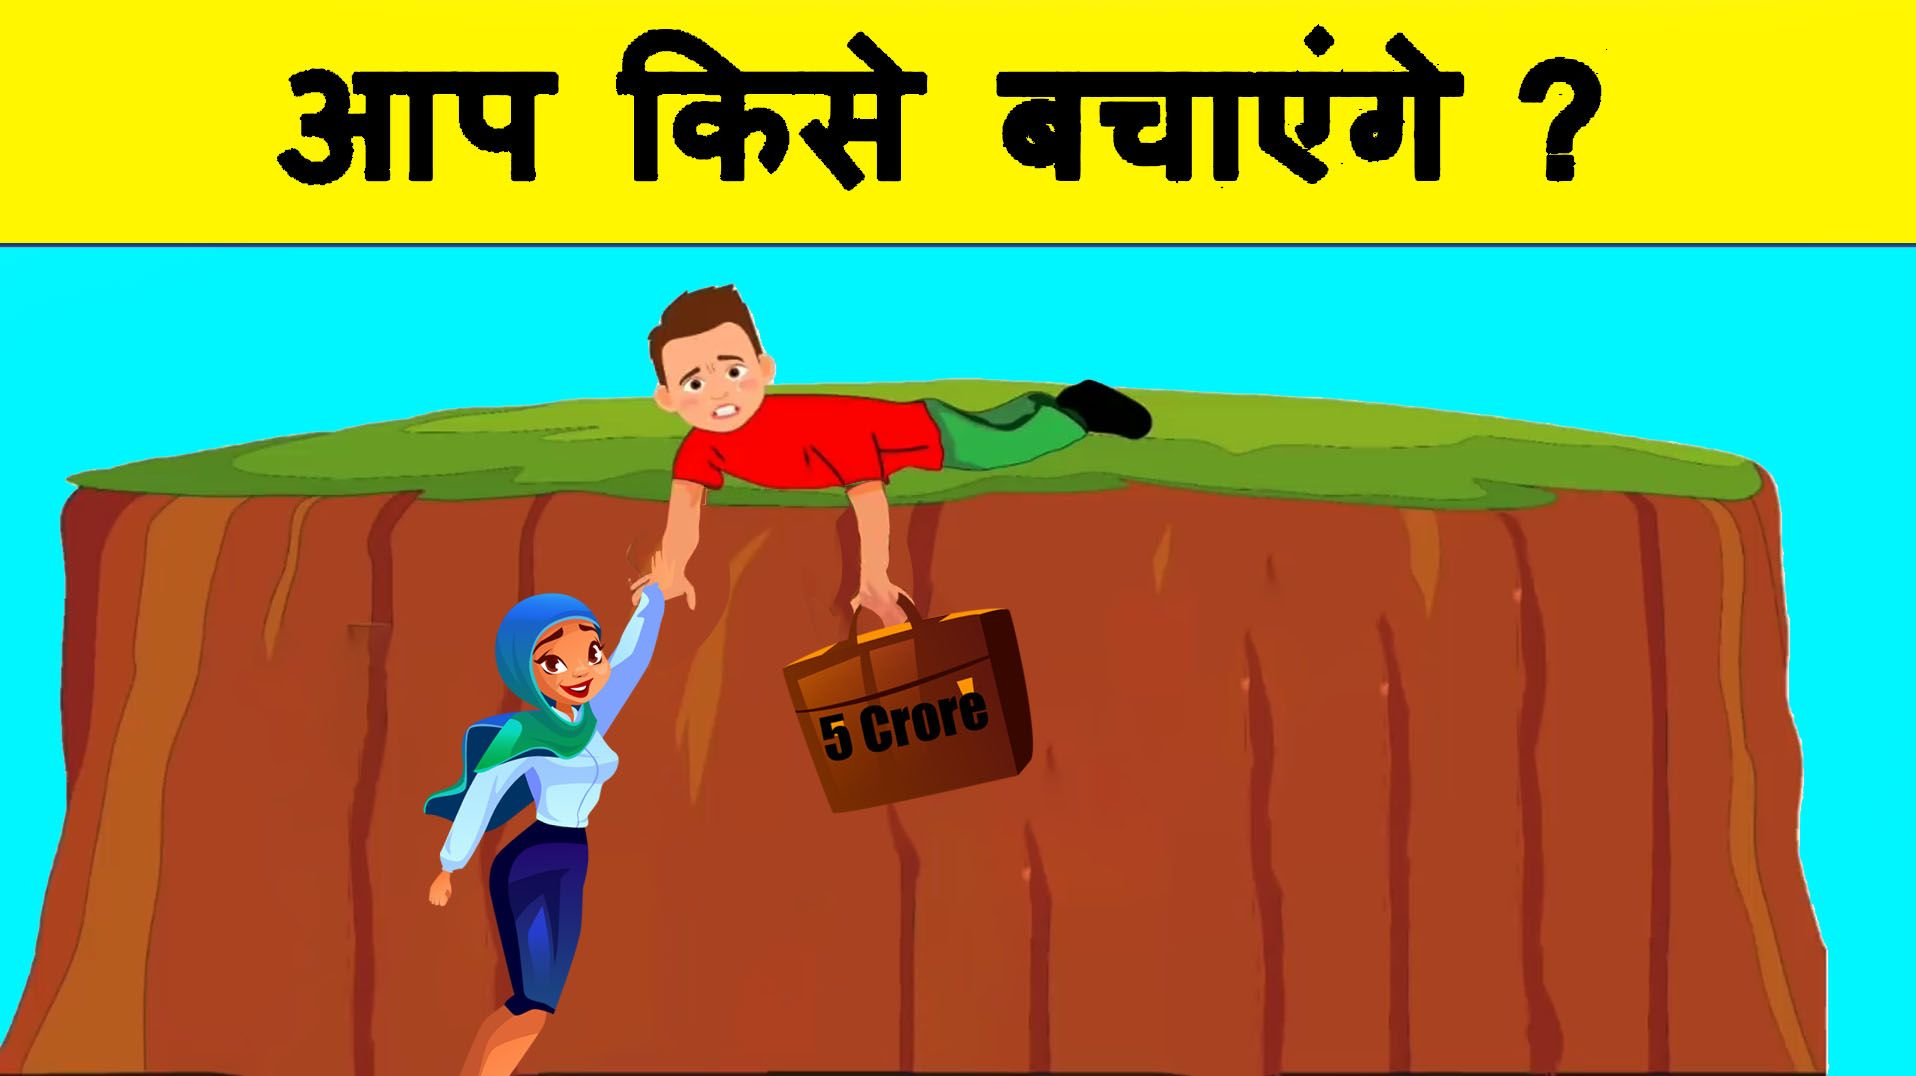 5 Majedar Aur Jasoosi Paheliyan Riddles In Hindi 2020